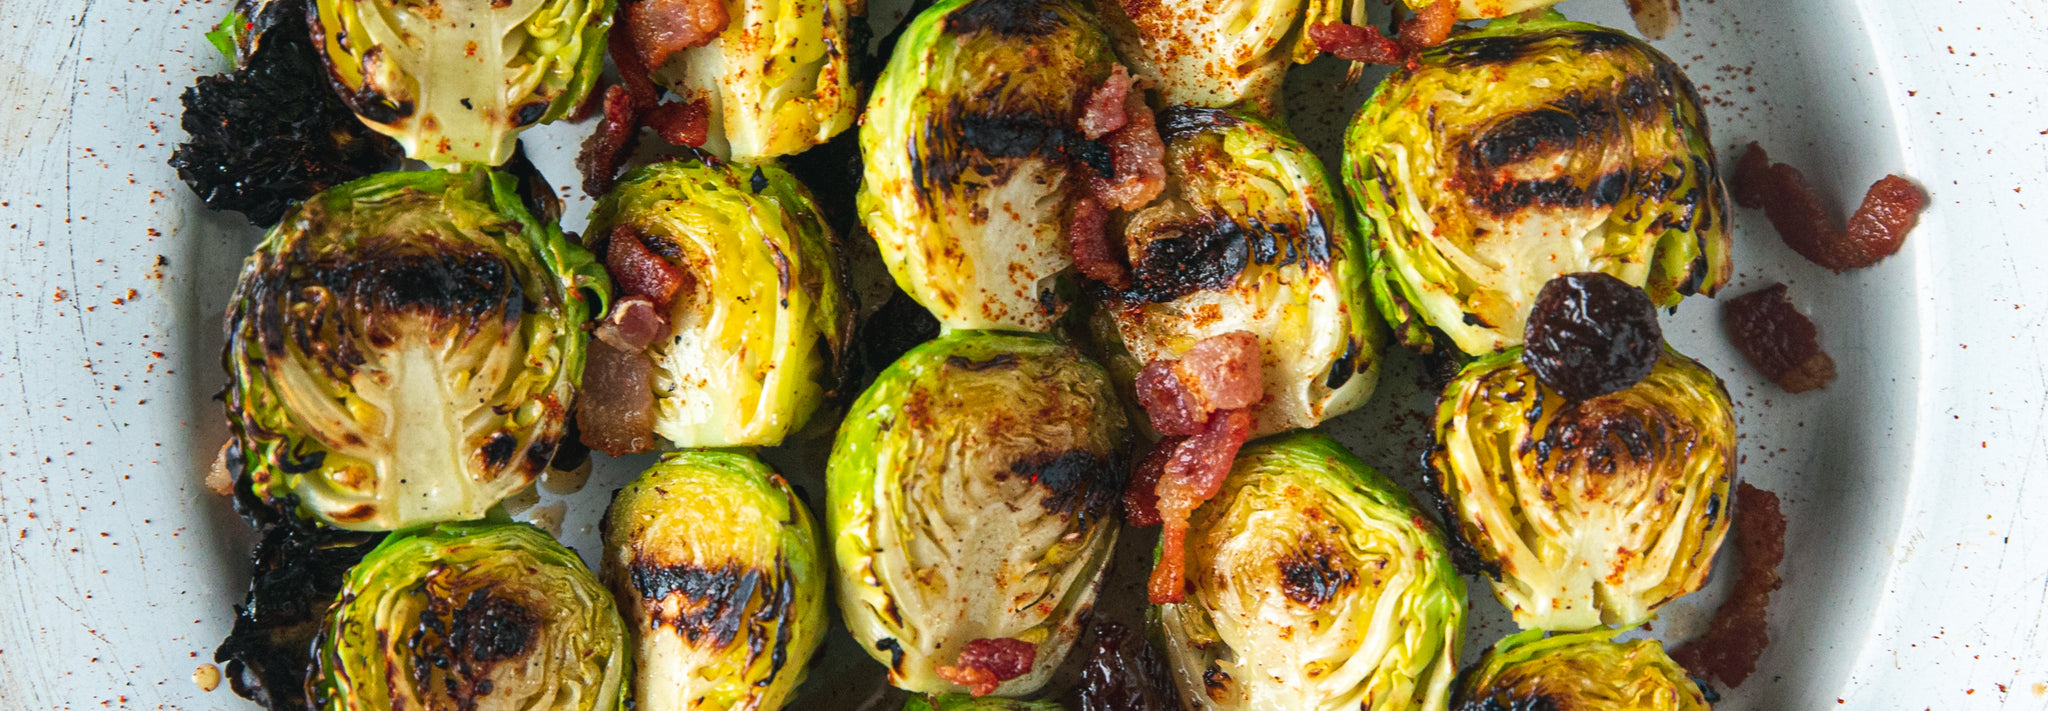 Brussel Sprout Skewers